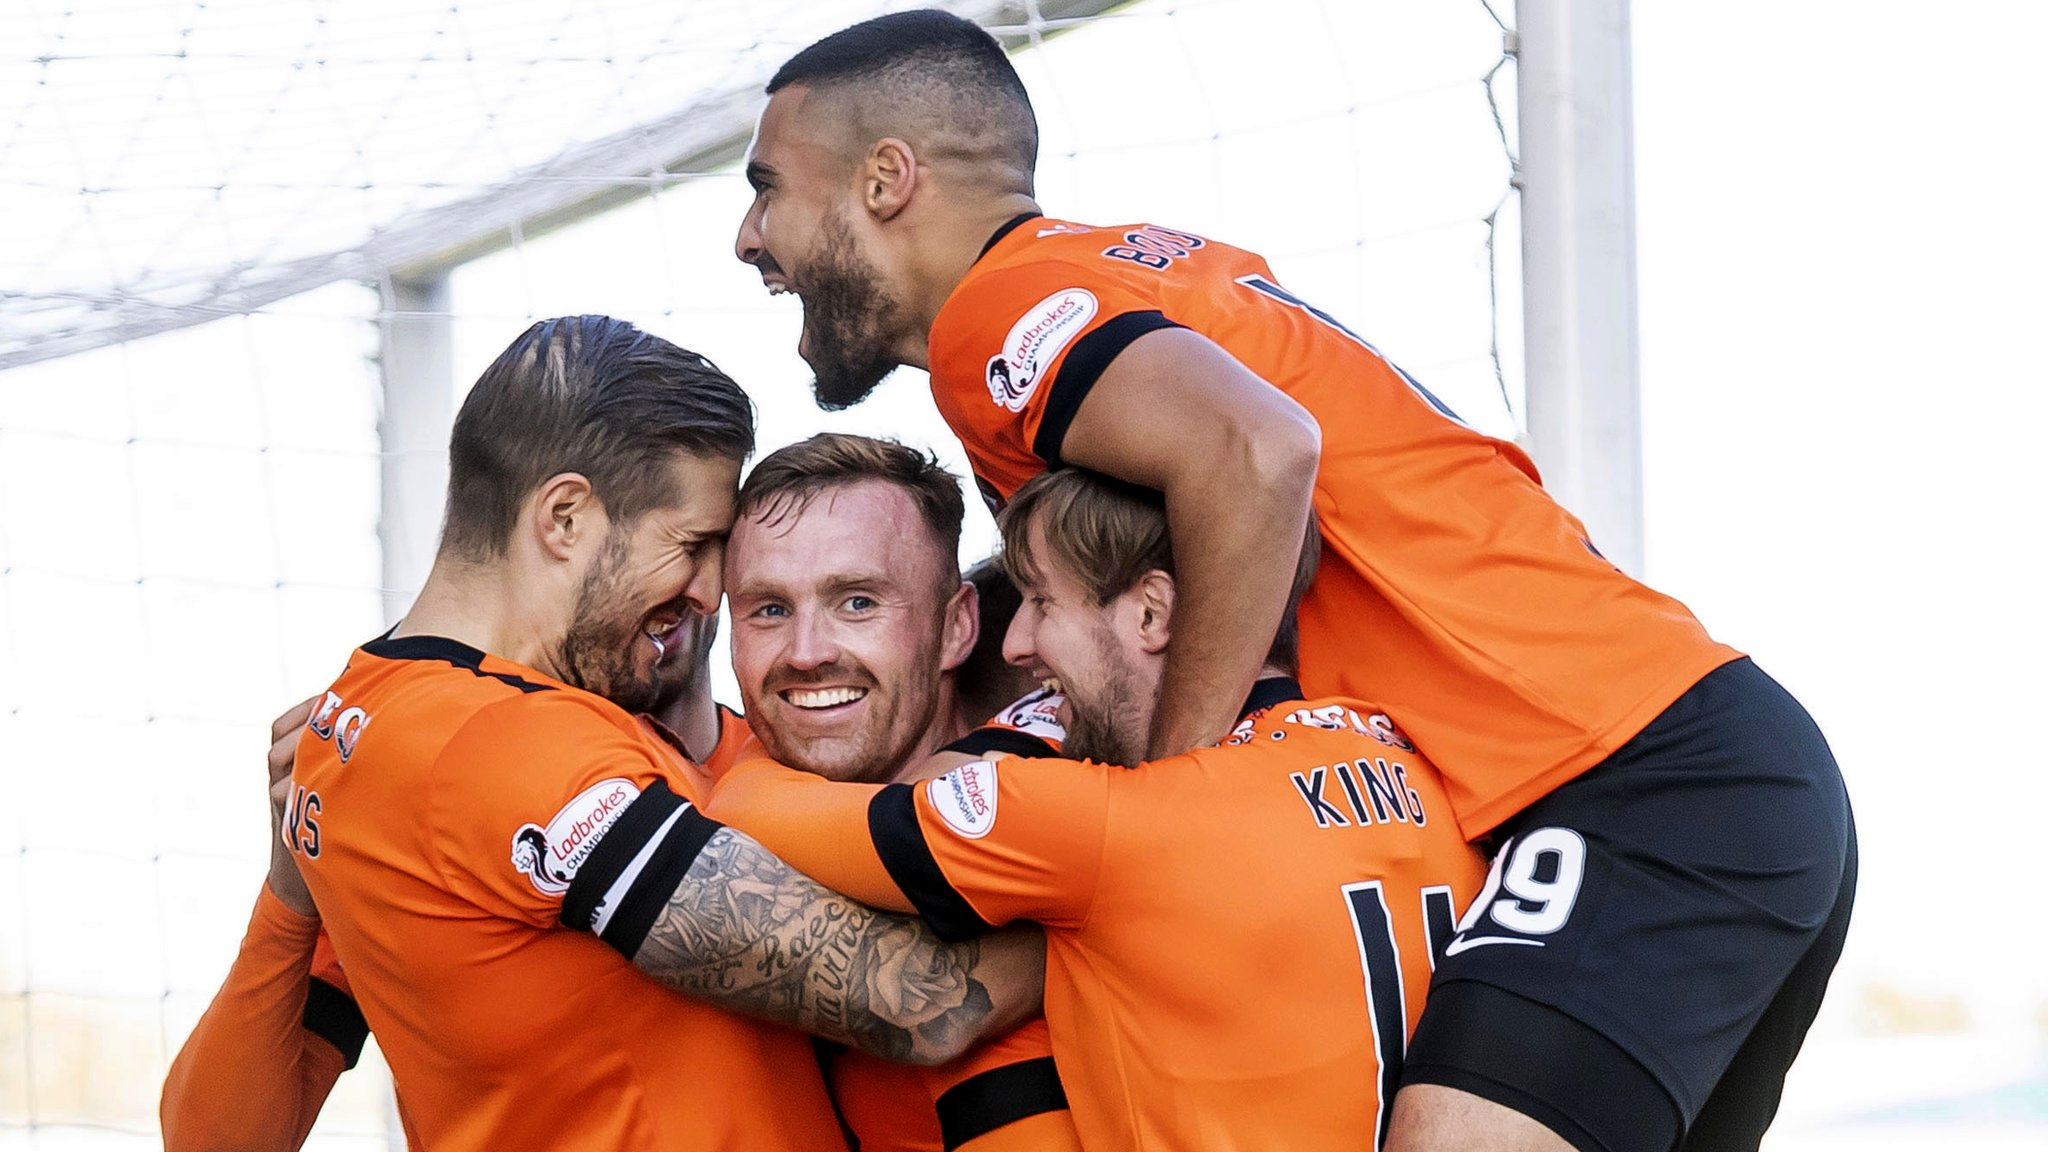 Dundee United beat Falkirk 2-0 in Scottish Championship